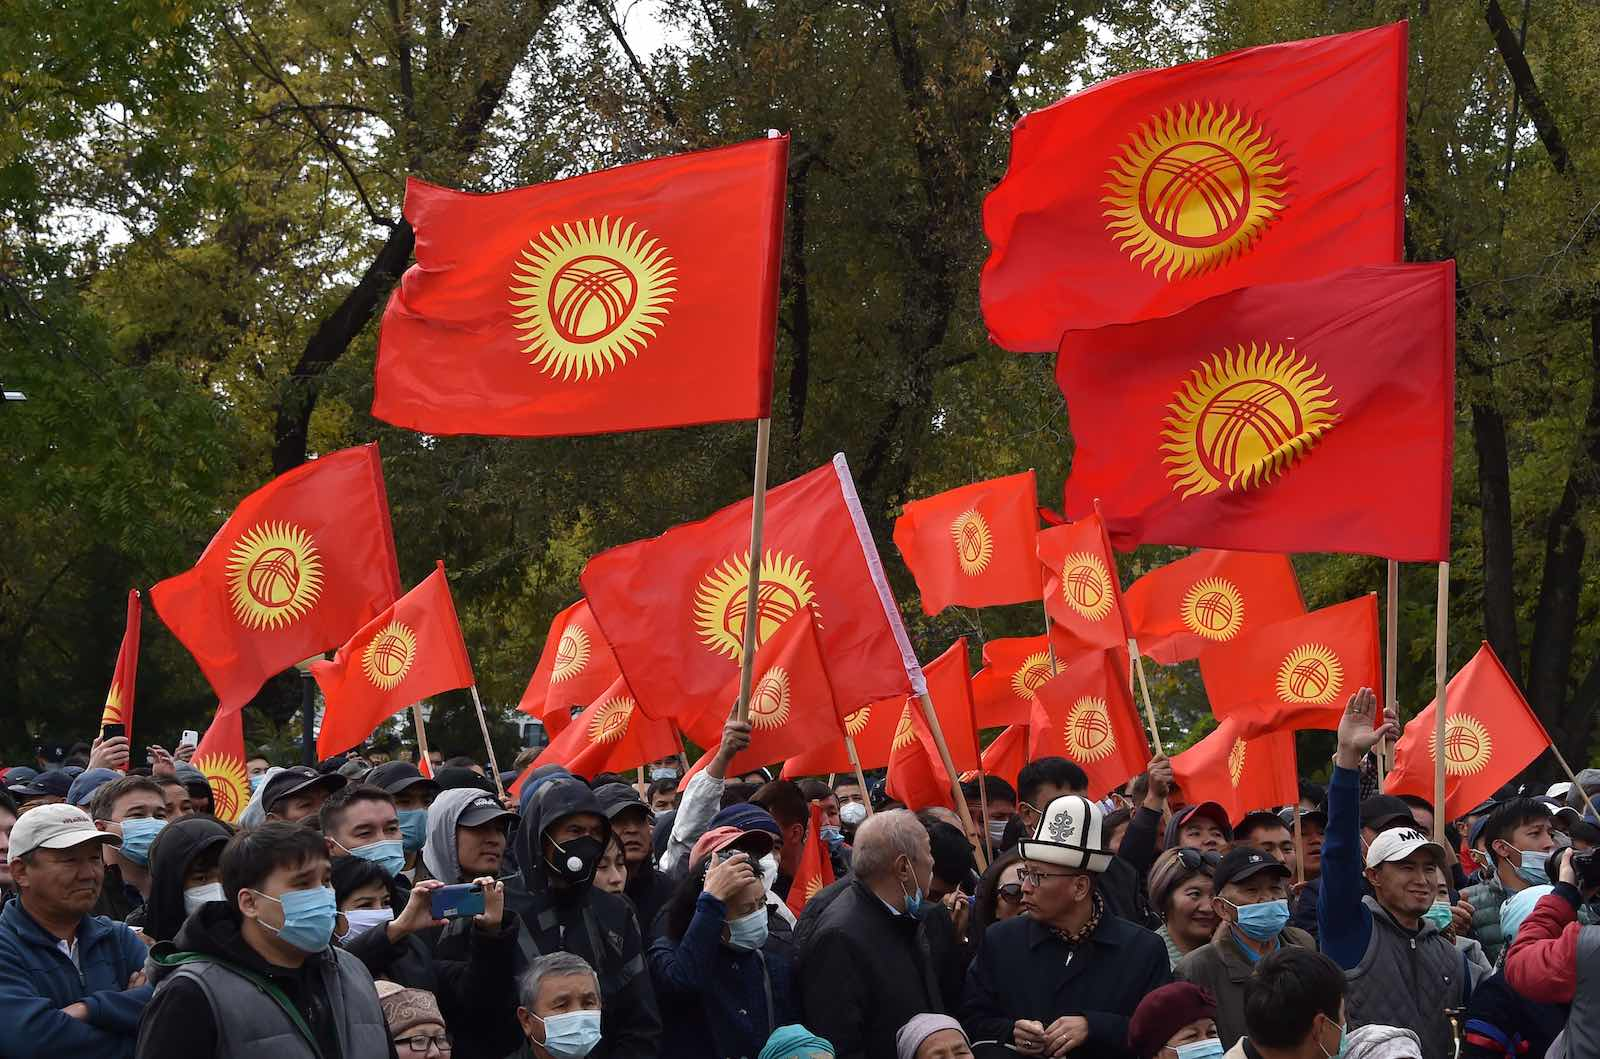 Supporters of former Kyrgyzstan President Almazbek Atambayev attend a rally in Bishkek, 9 October 2020 (Vyacheslav Oseledko/AFP via Getty Images)